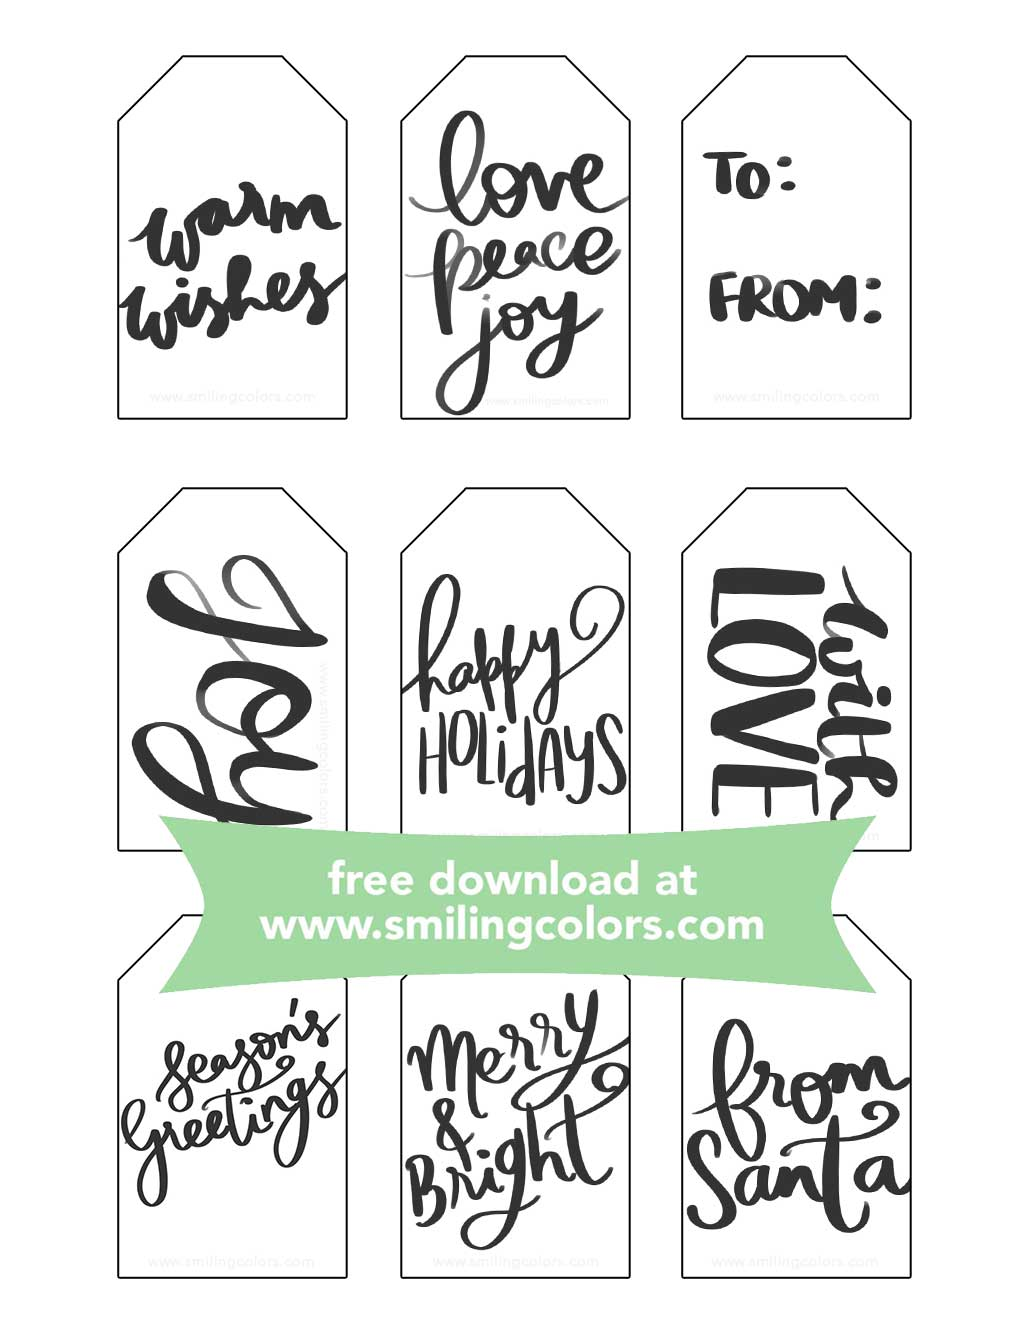 photo relating to Holiday Tags Printable named Printable Trip present tags, Absolutely free towards obtain by now - Smitha Katti